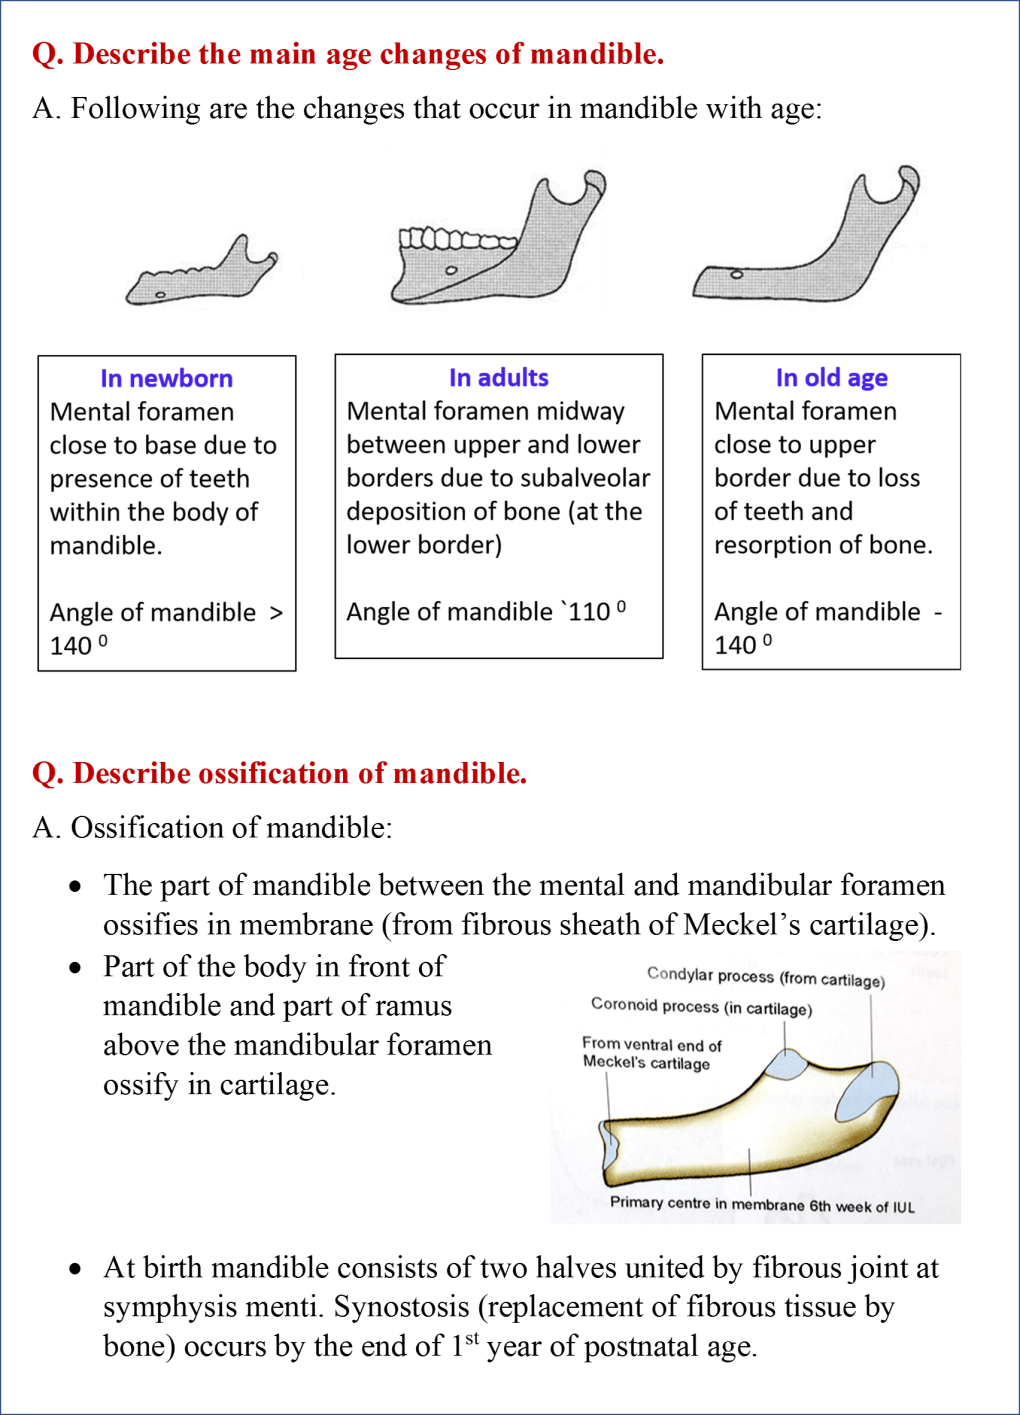 Age changes and ossification of mandible